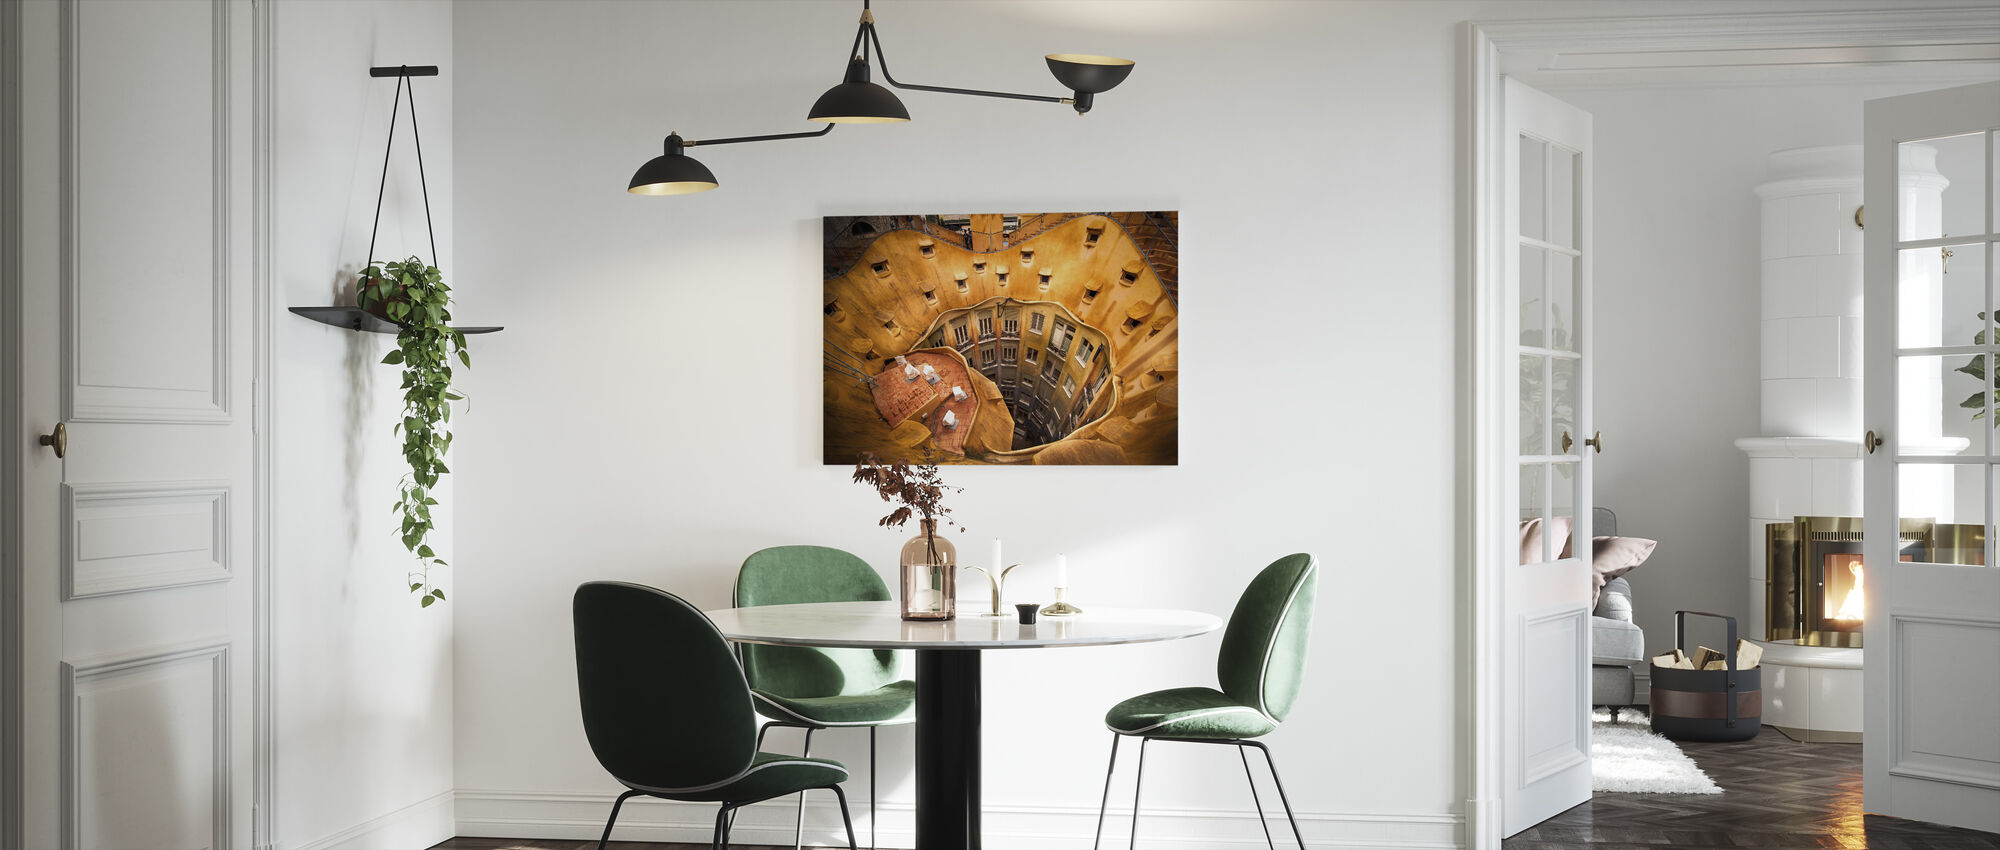 La Pedrera House - Canvas print - Kitchen